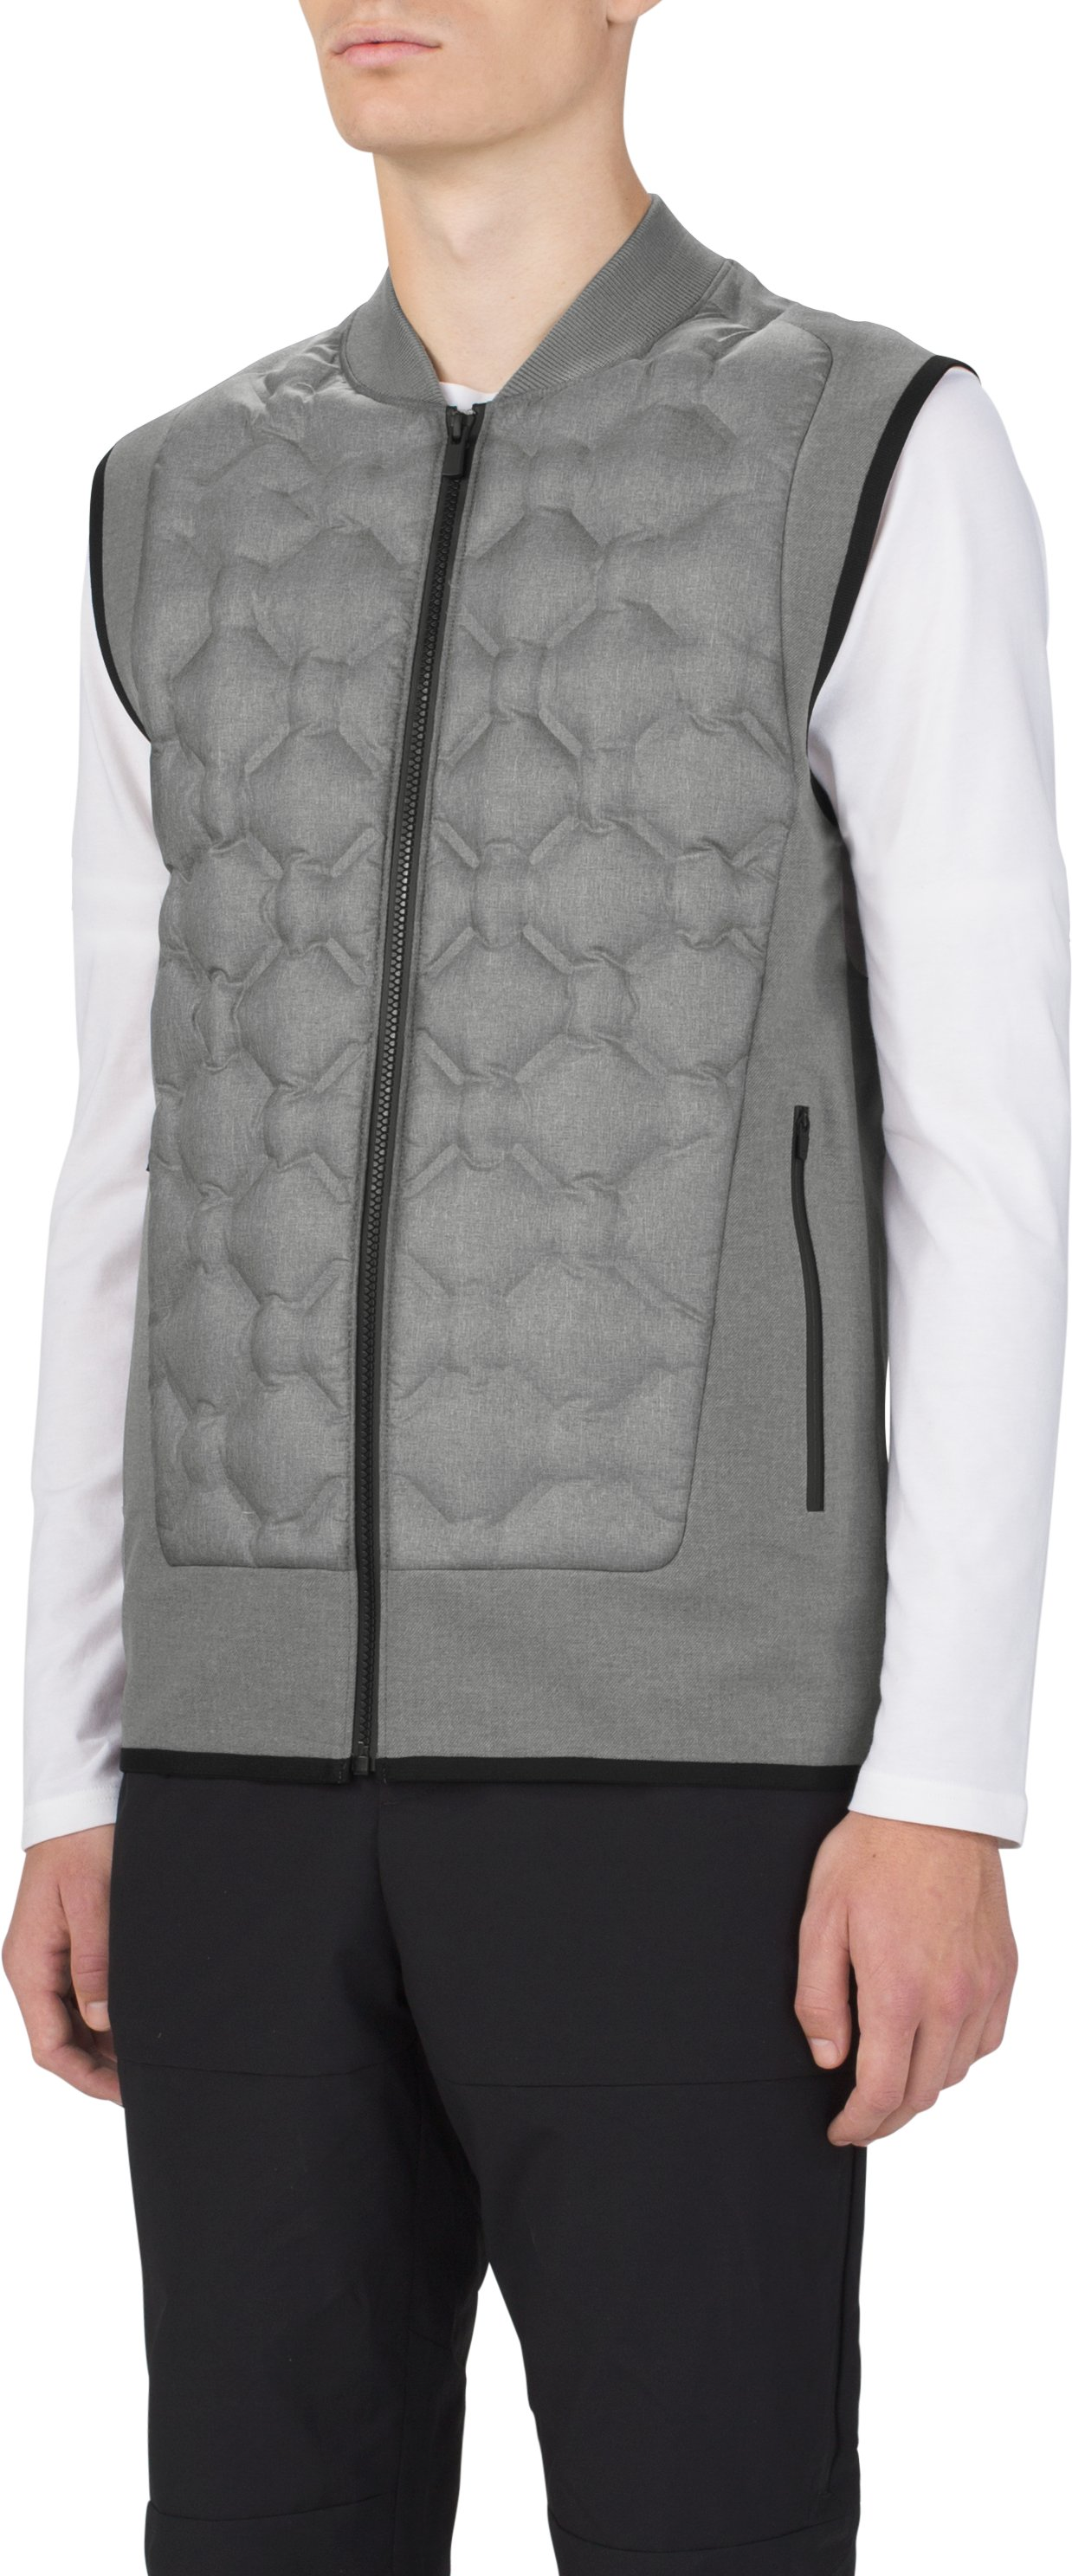 Transition Insulated Suiting Vest, WARM HEATHER, zoomed image